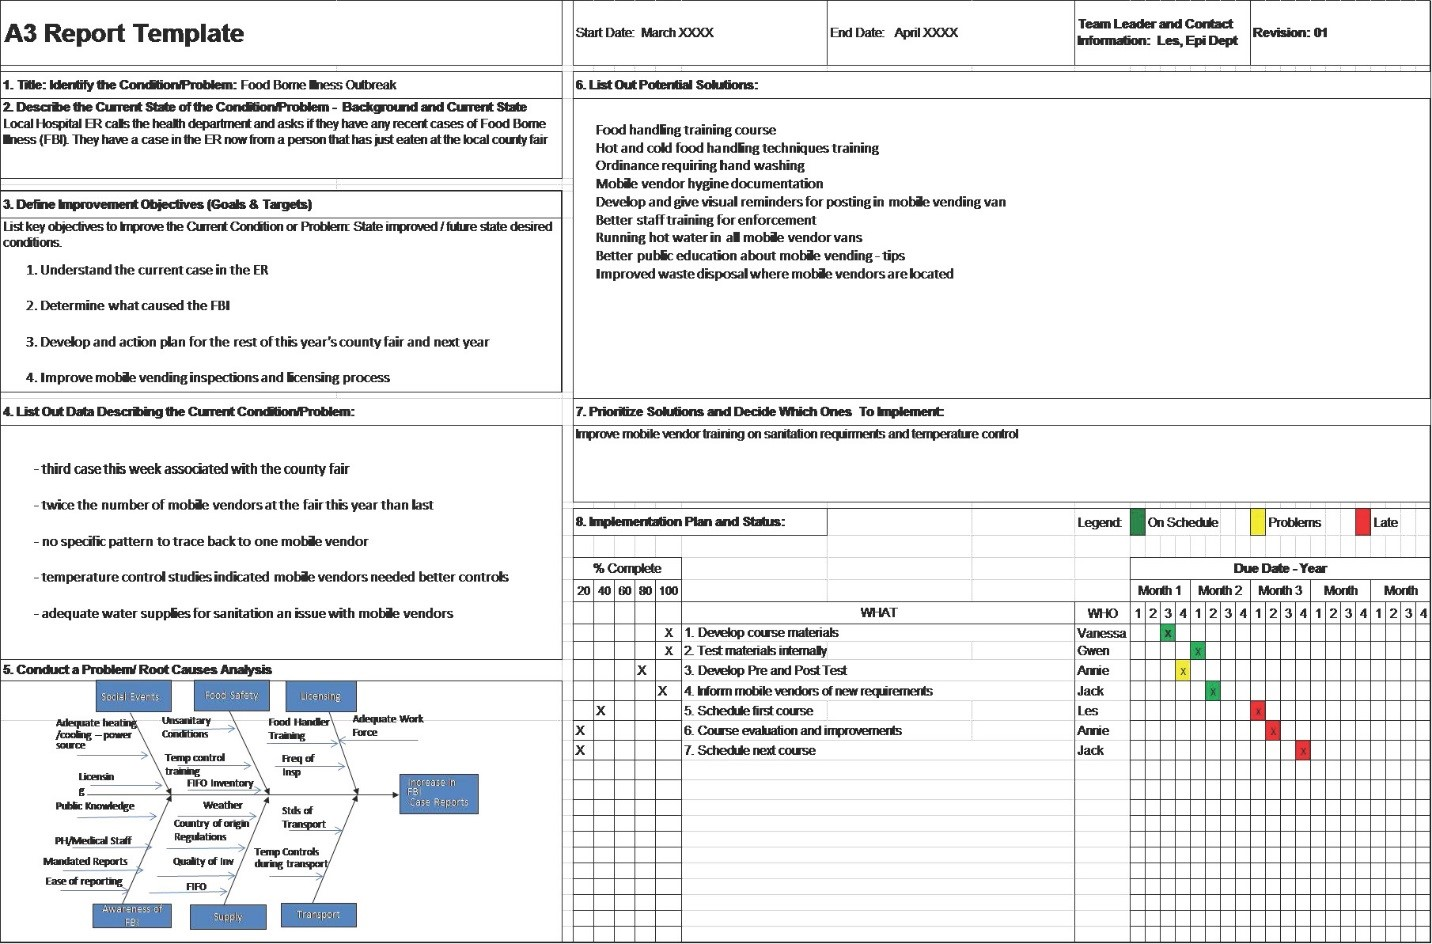 A25 Problem Solving Report For A3 Report Template